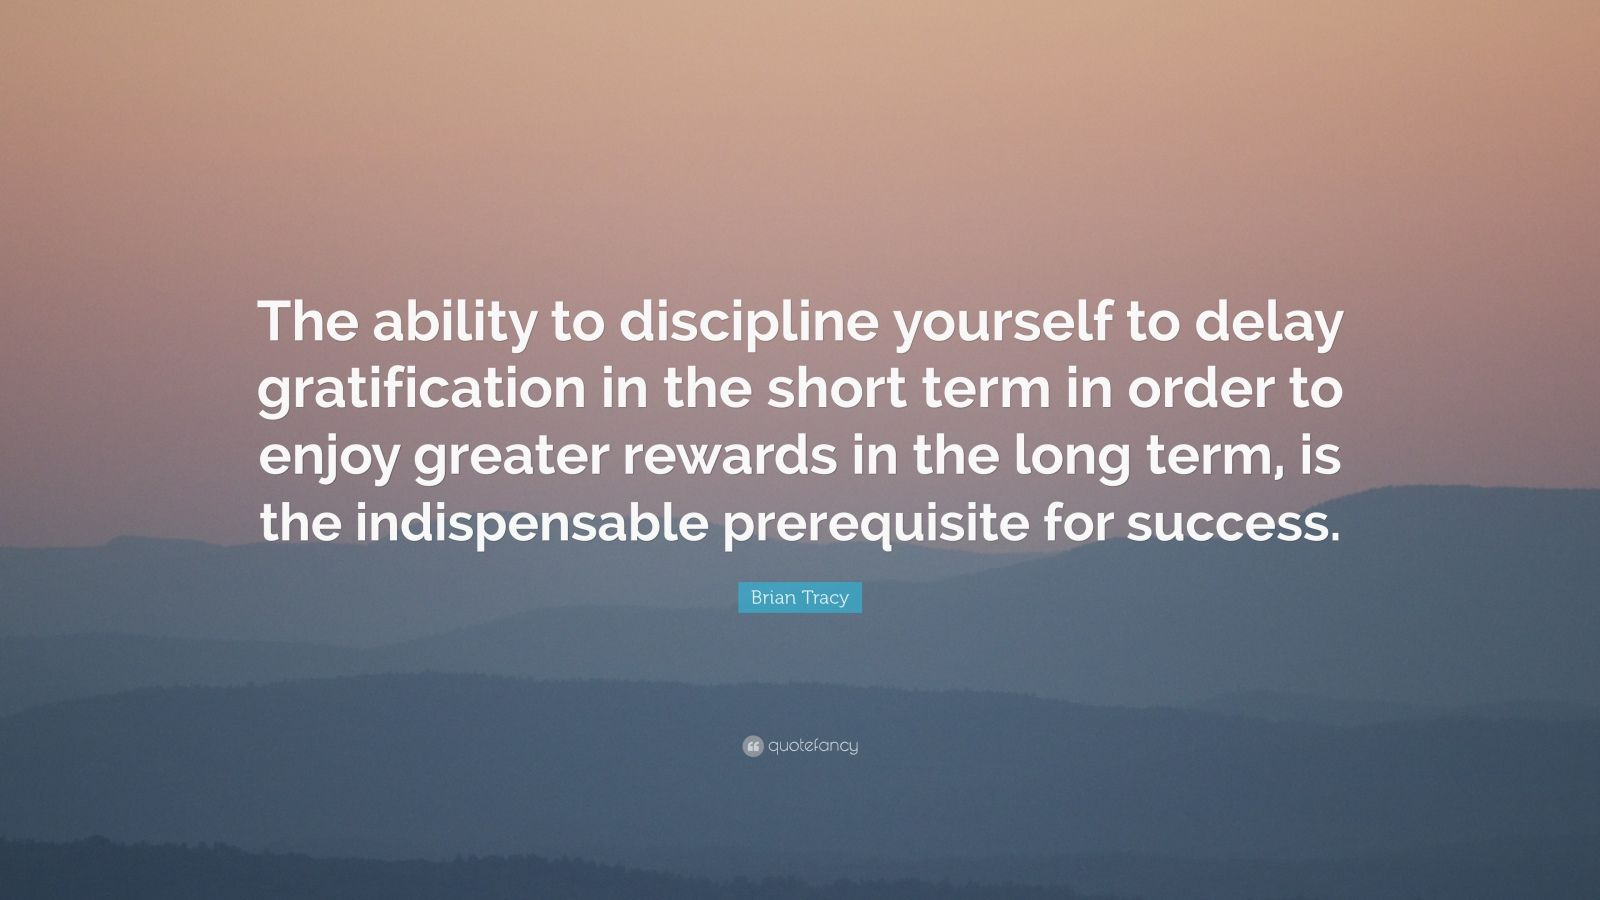 discipline and gratification quotes